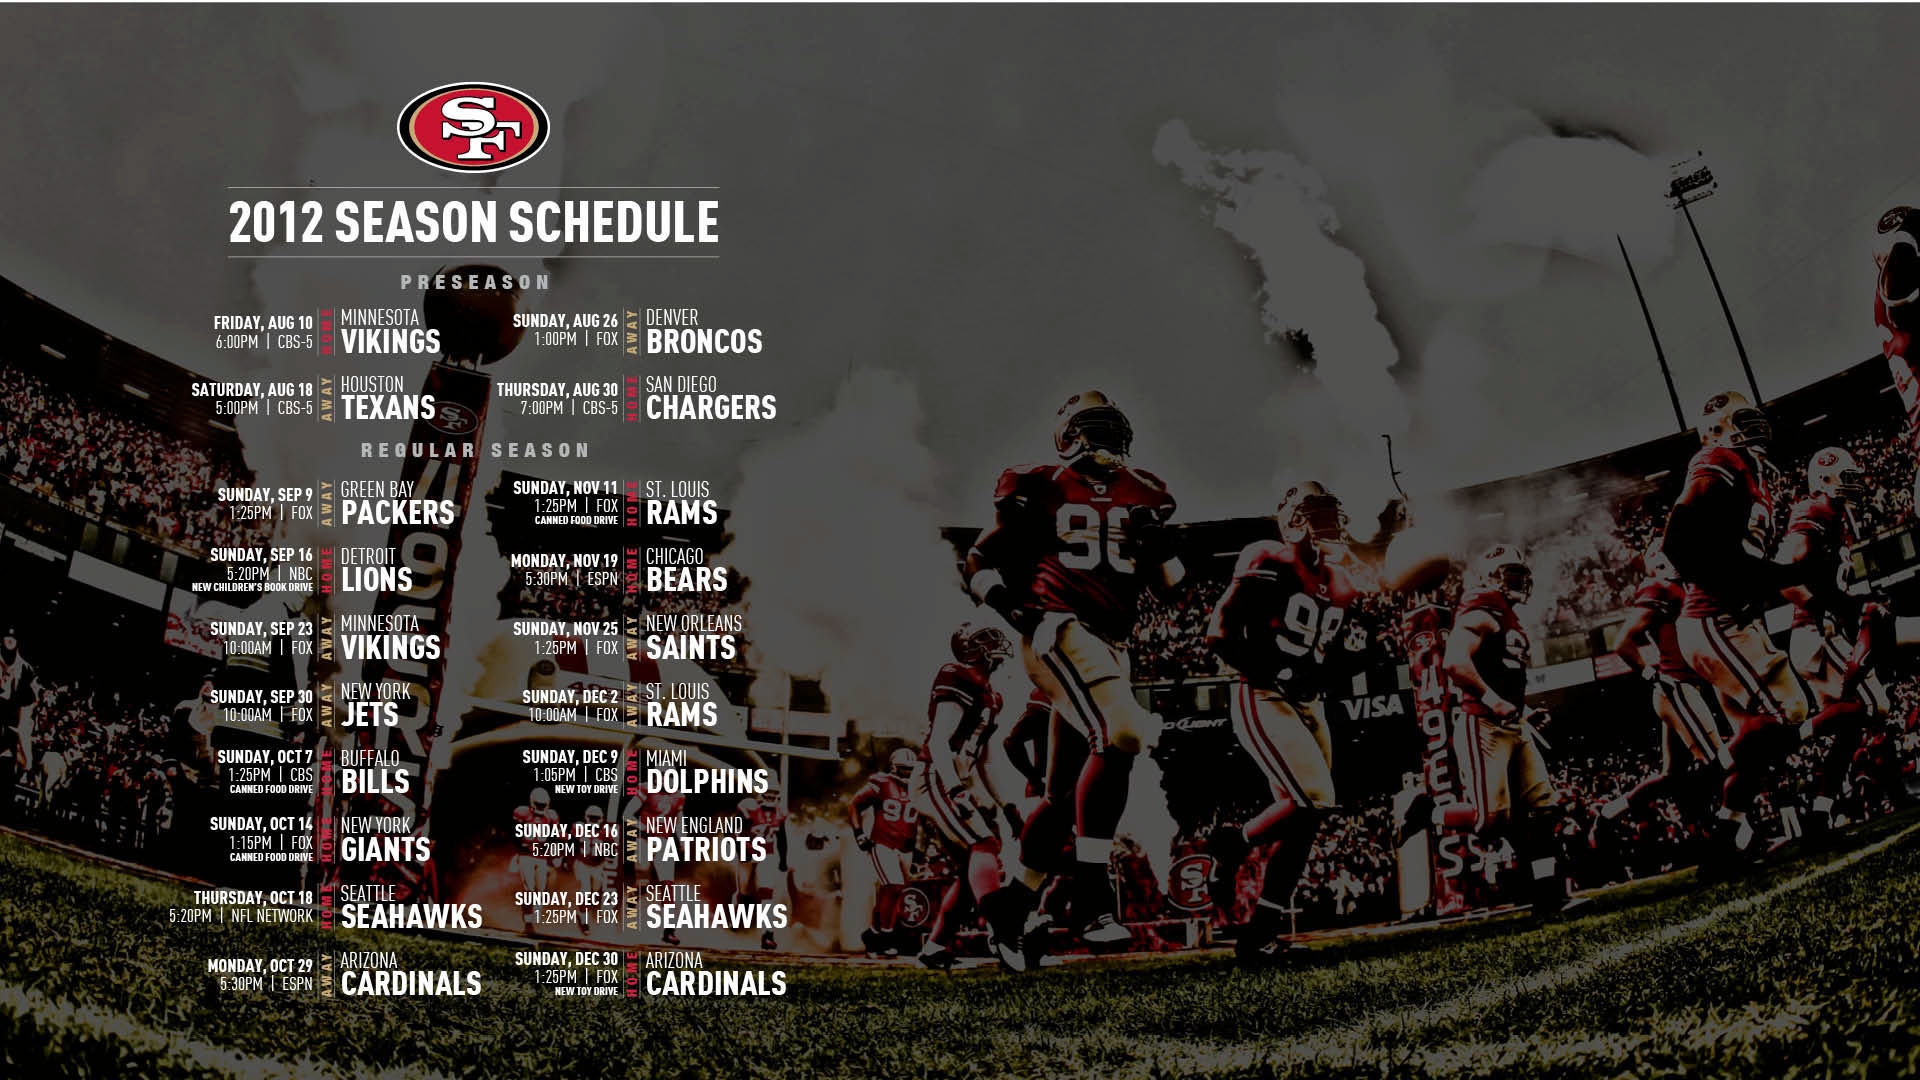 49ers wallpapers your phone 67 images 1920x1080 49ers 2014 schedule cell phone desktop wallpaper voltagebd Gallery